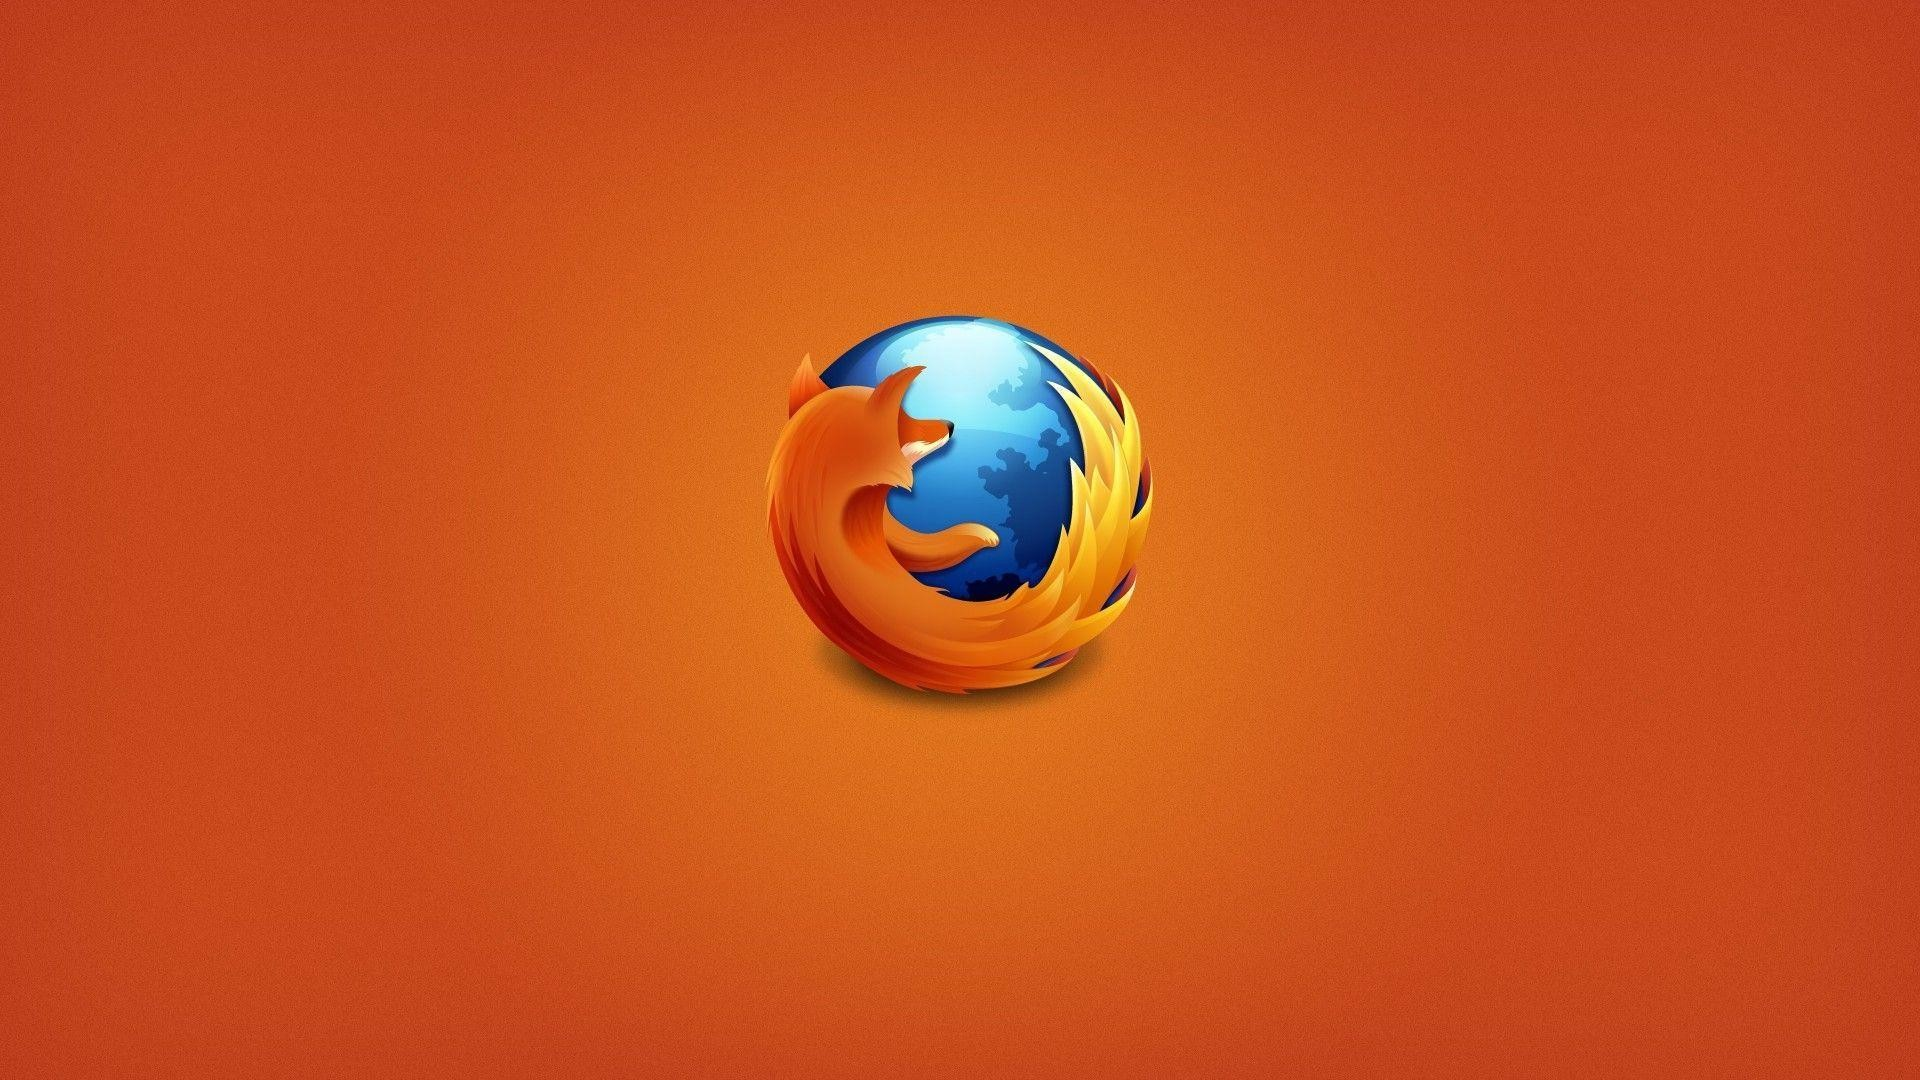 1920x1080 Mozilla Firefox Images Background 1080p #3364 Wallpaper .